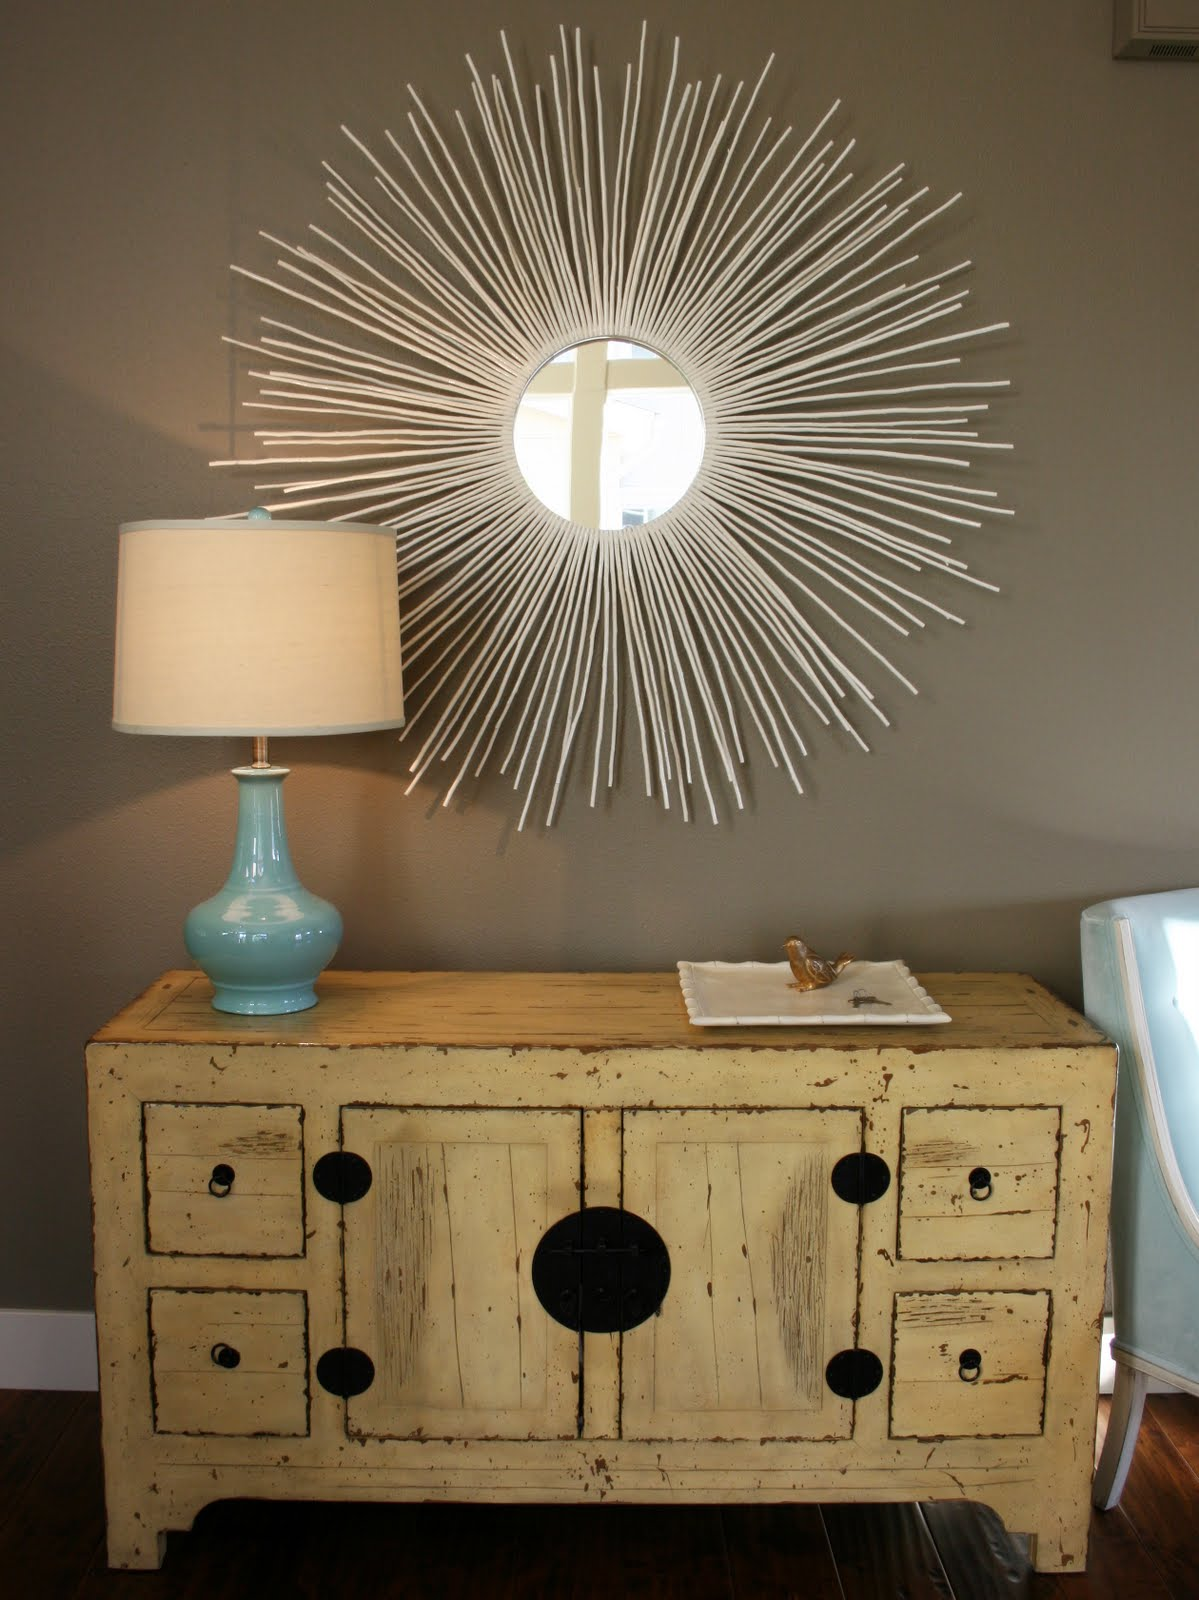 Weekend Diy Sunburst Wall Mirror